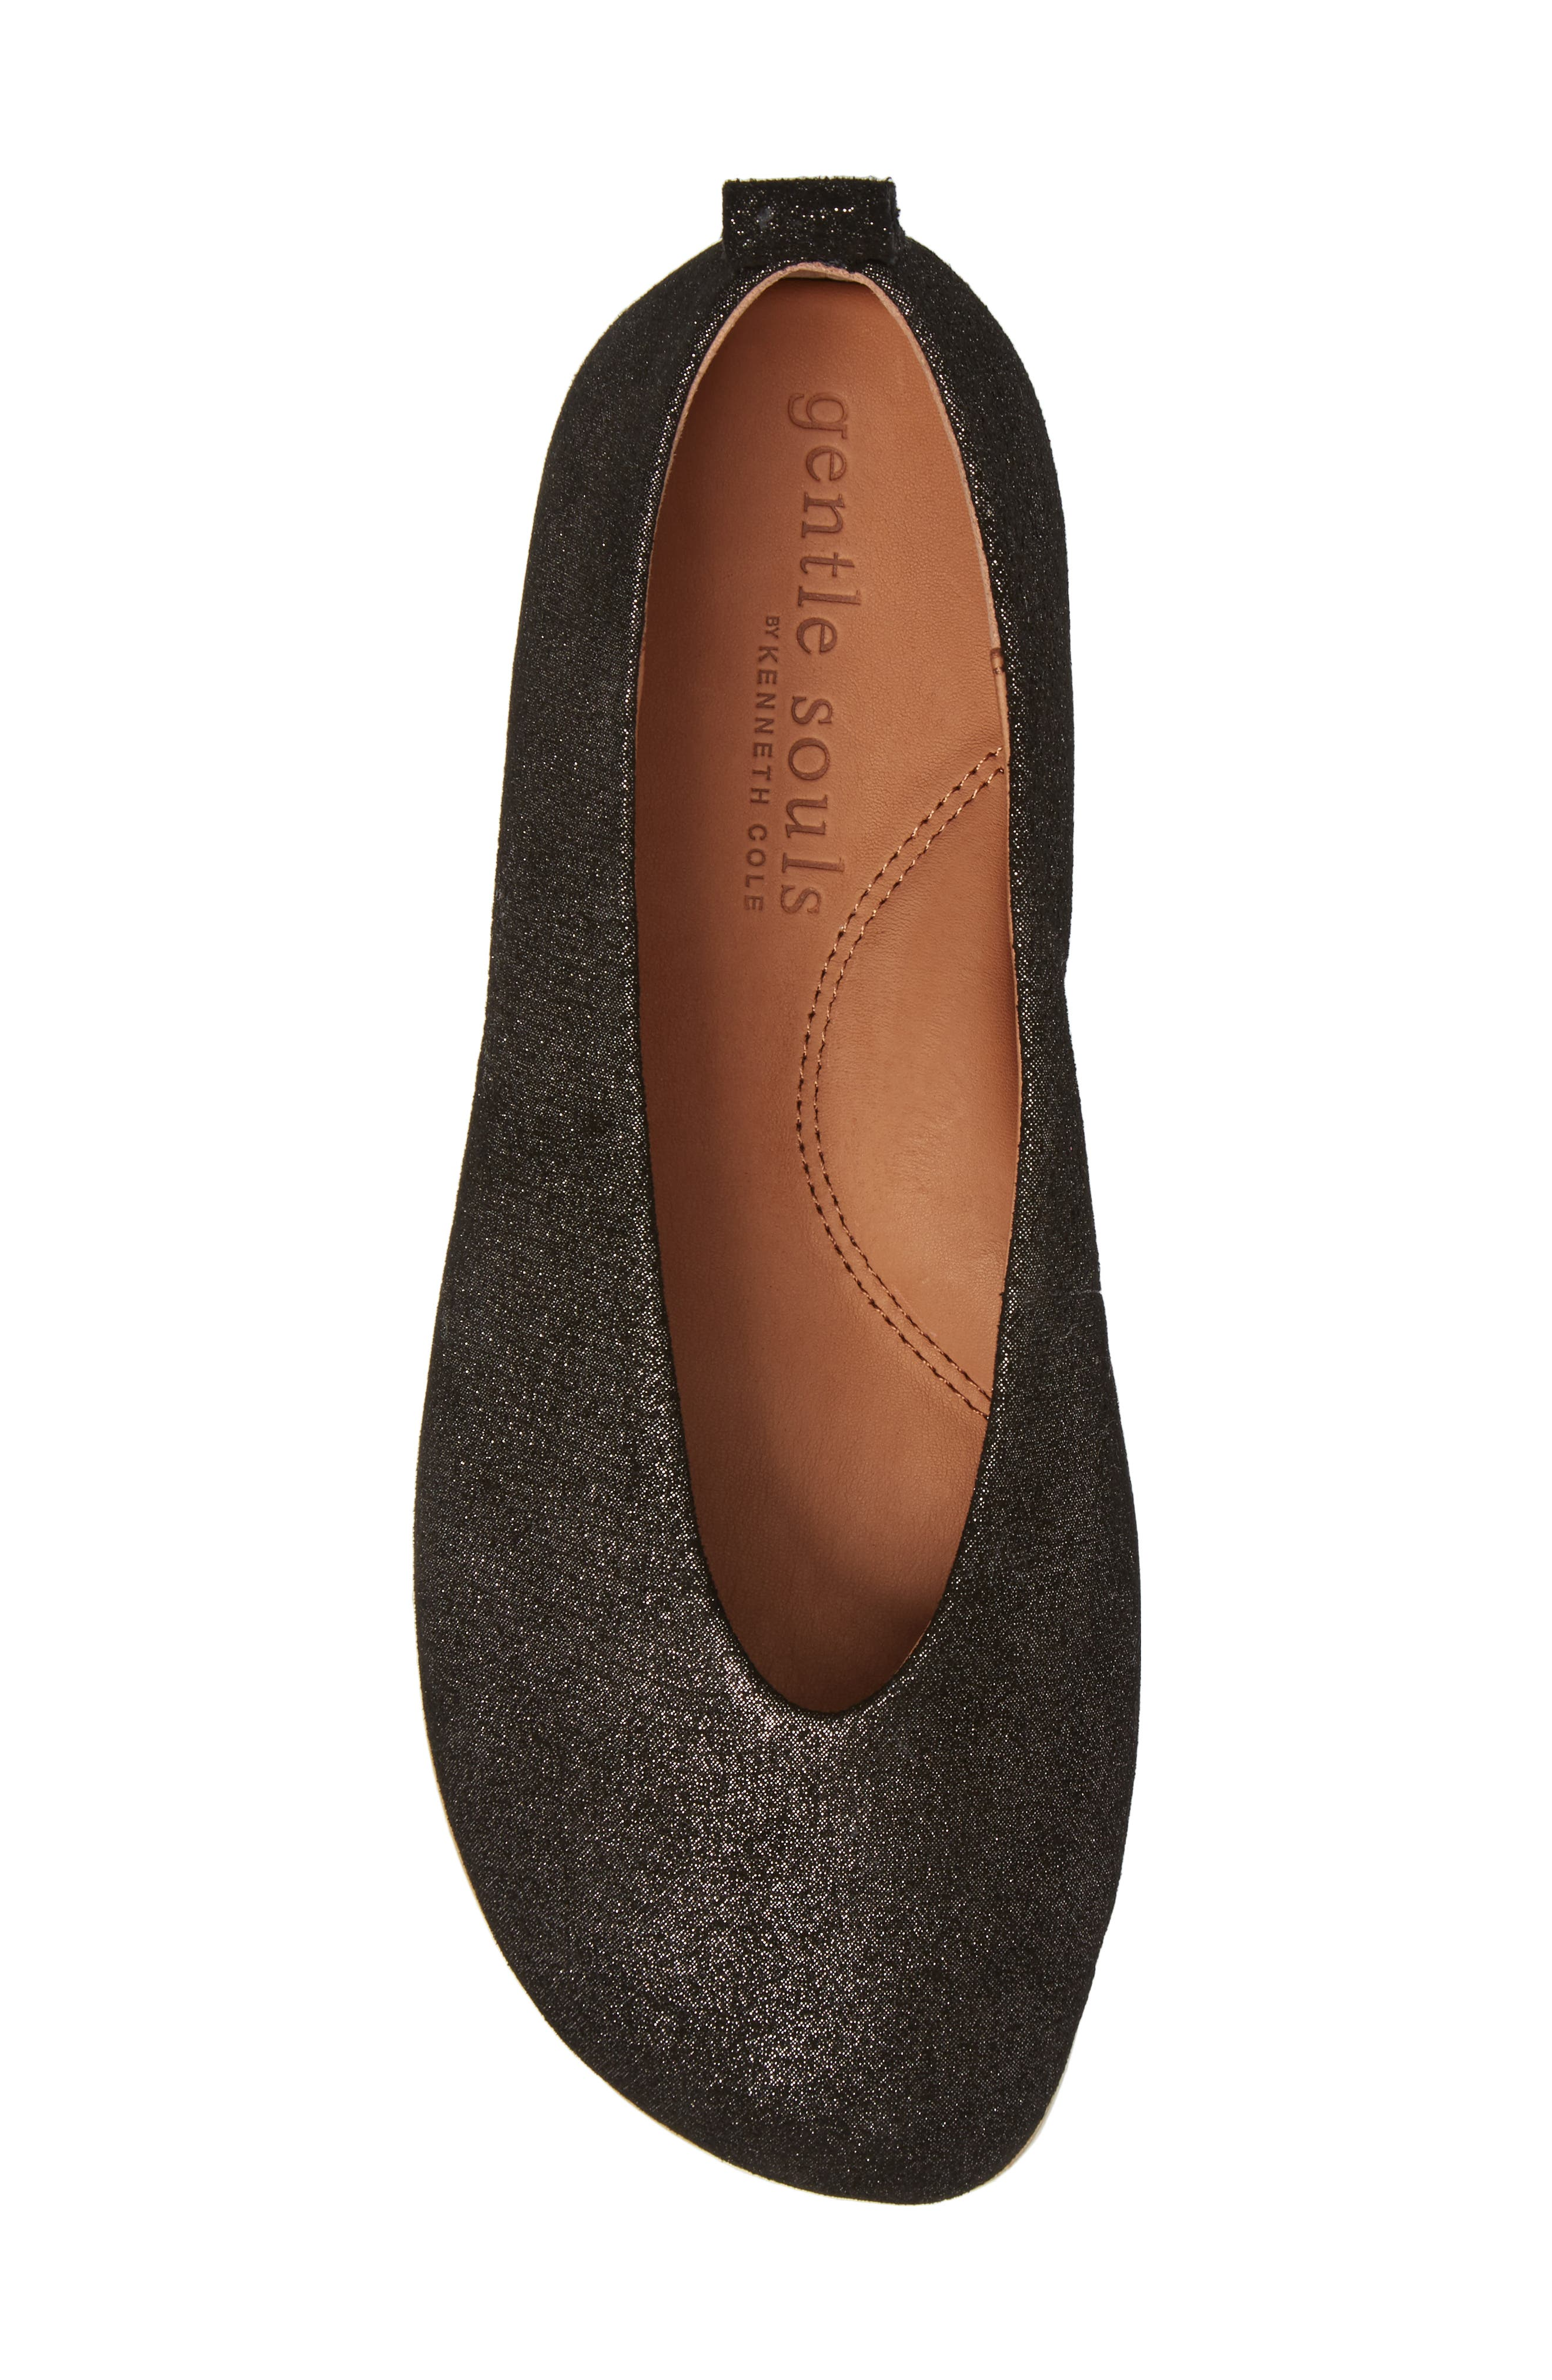 GENTLE SOULS BY KENNETH COLE, Demi Flat, Alternate thumbnail 5, color, BLACK EMBOSSED LEATHER